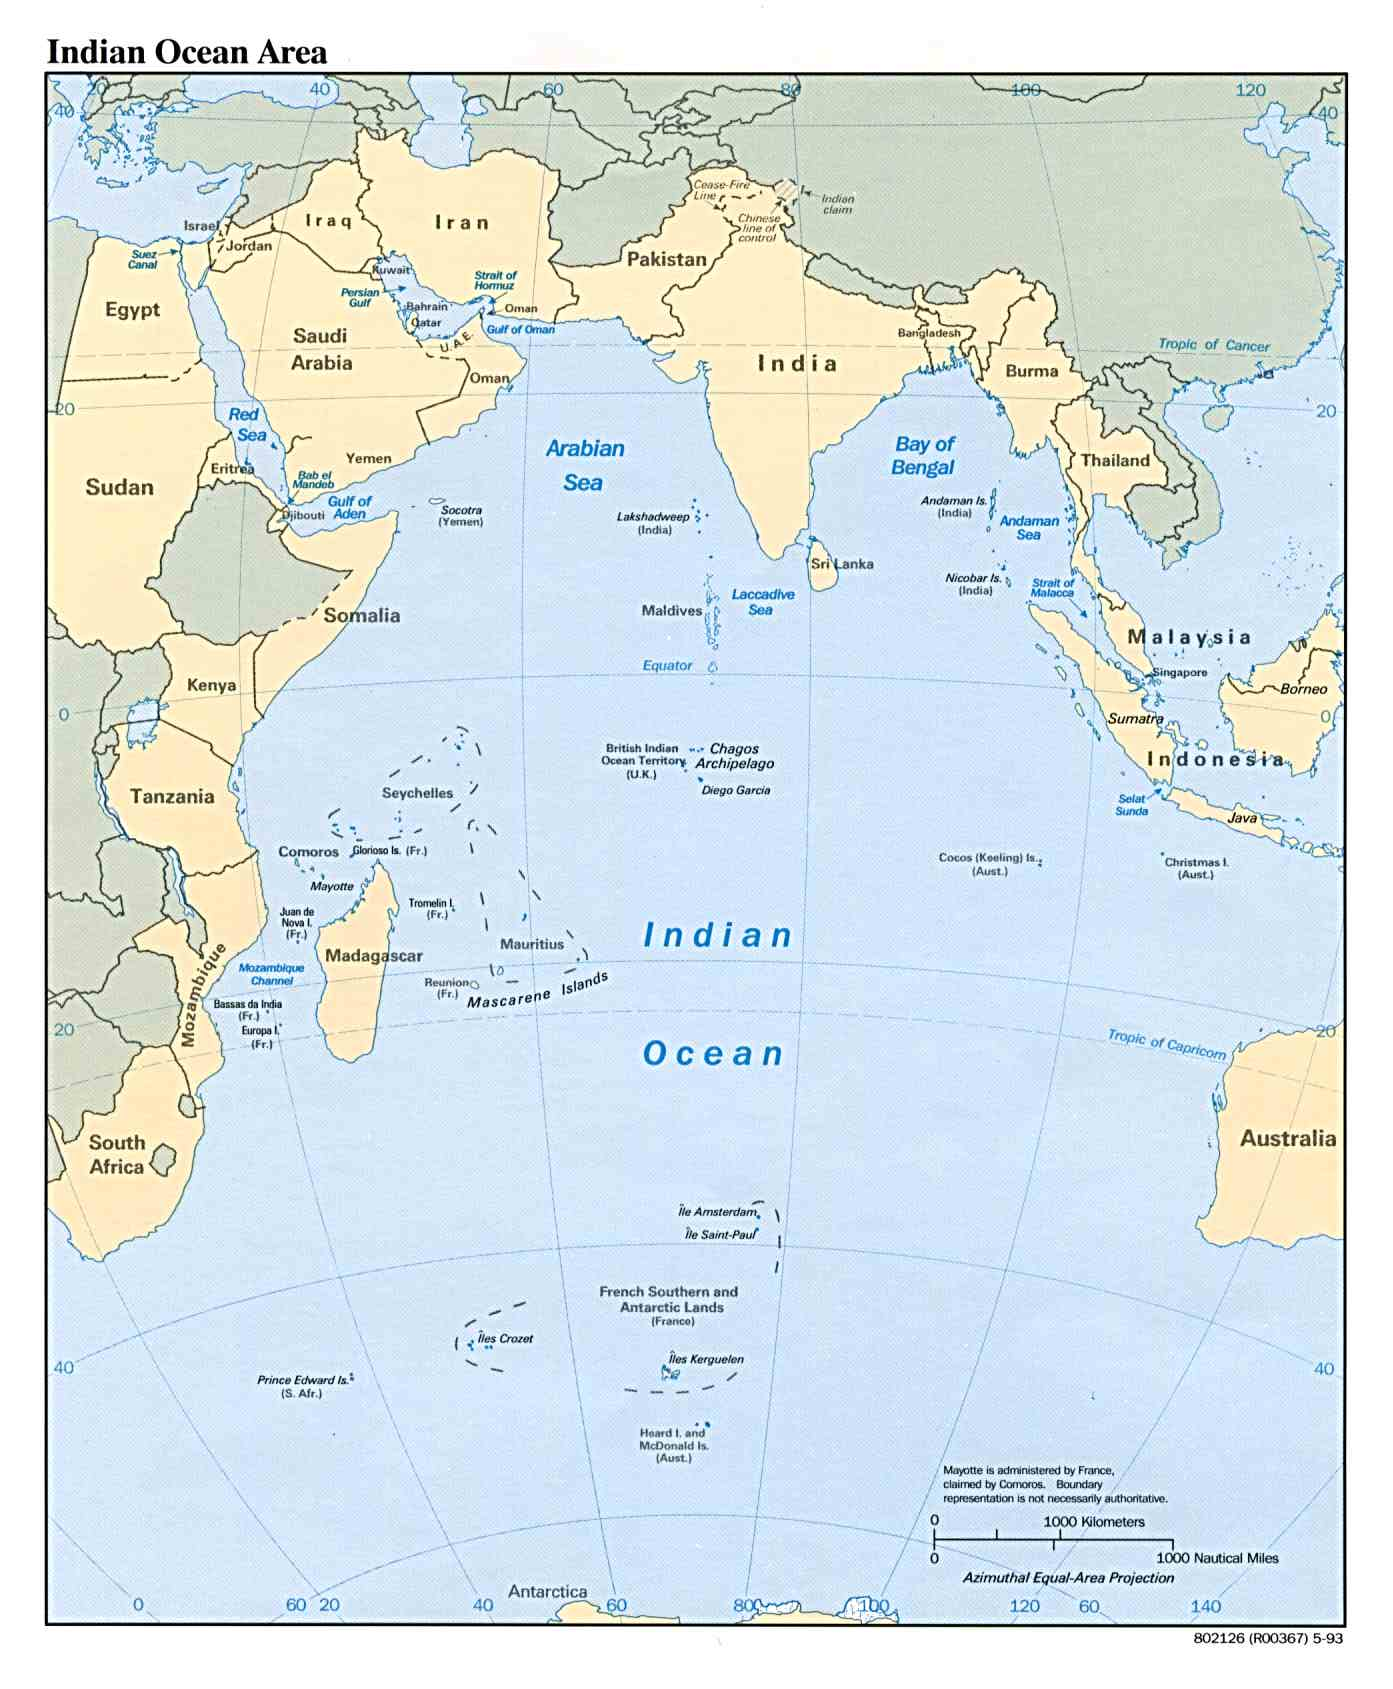 Piracy+in+the+indian+ocean+map